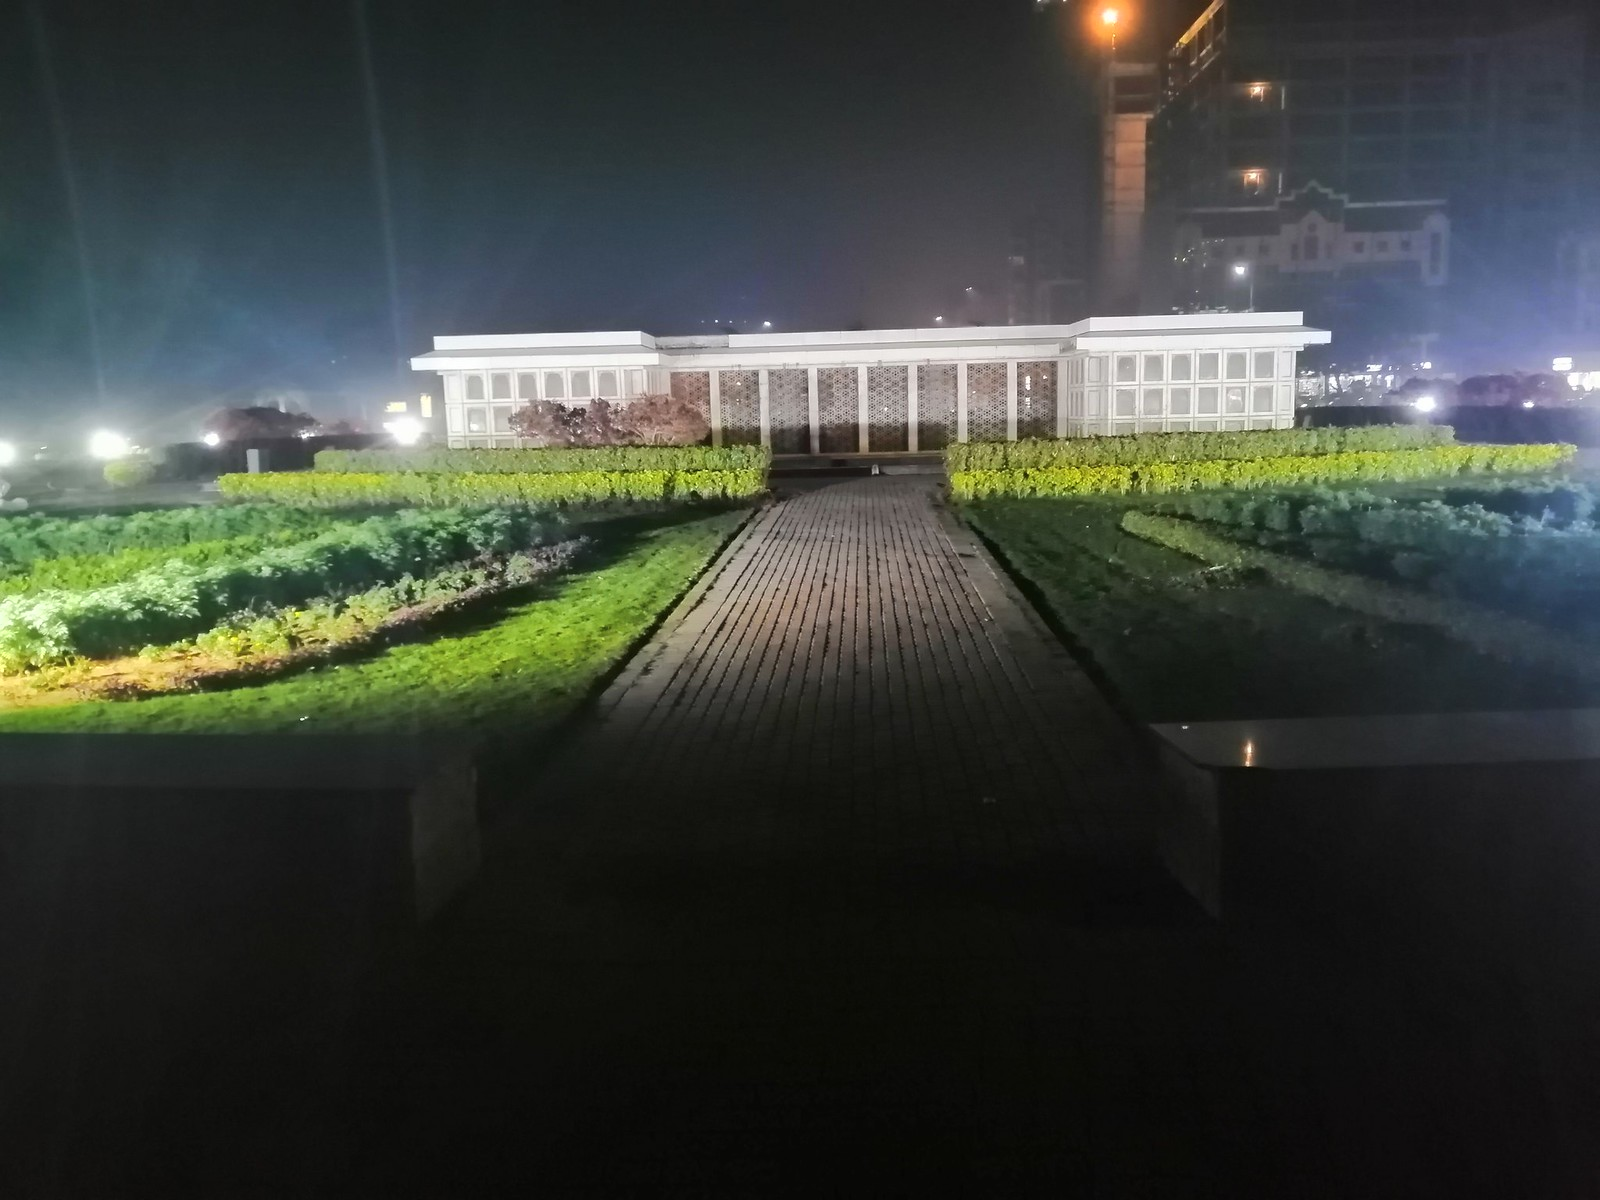 Image at Night with AI Mode on Honor 8X